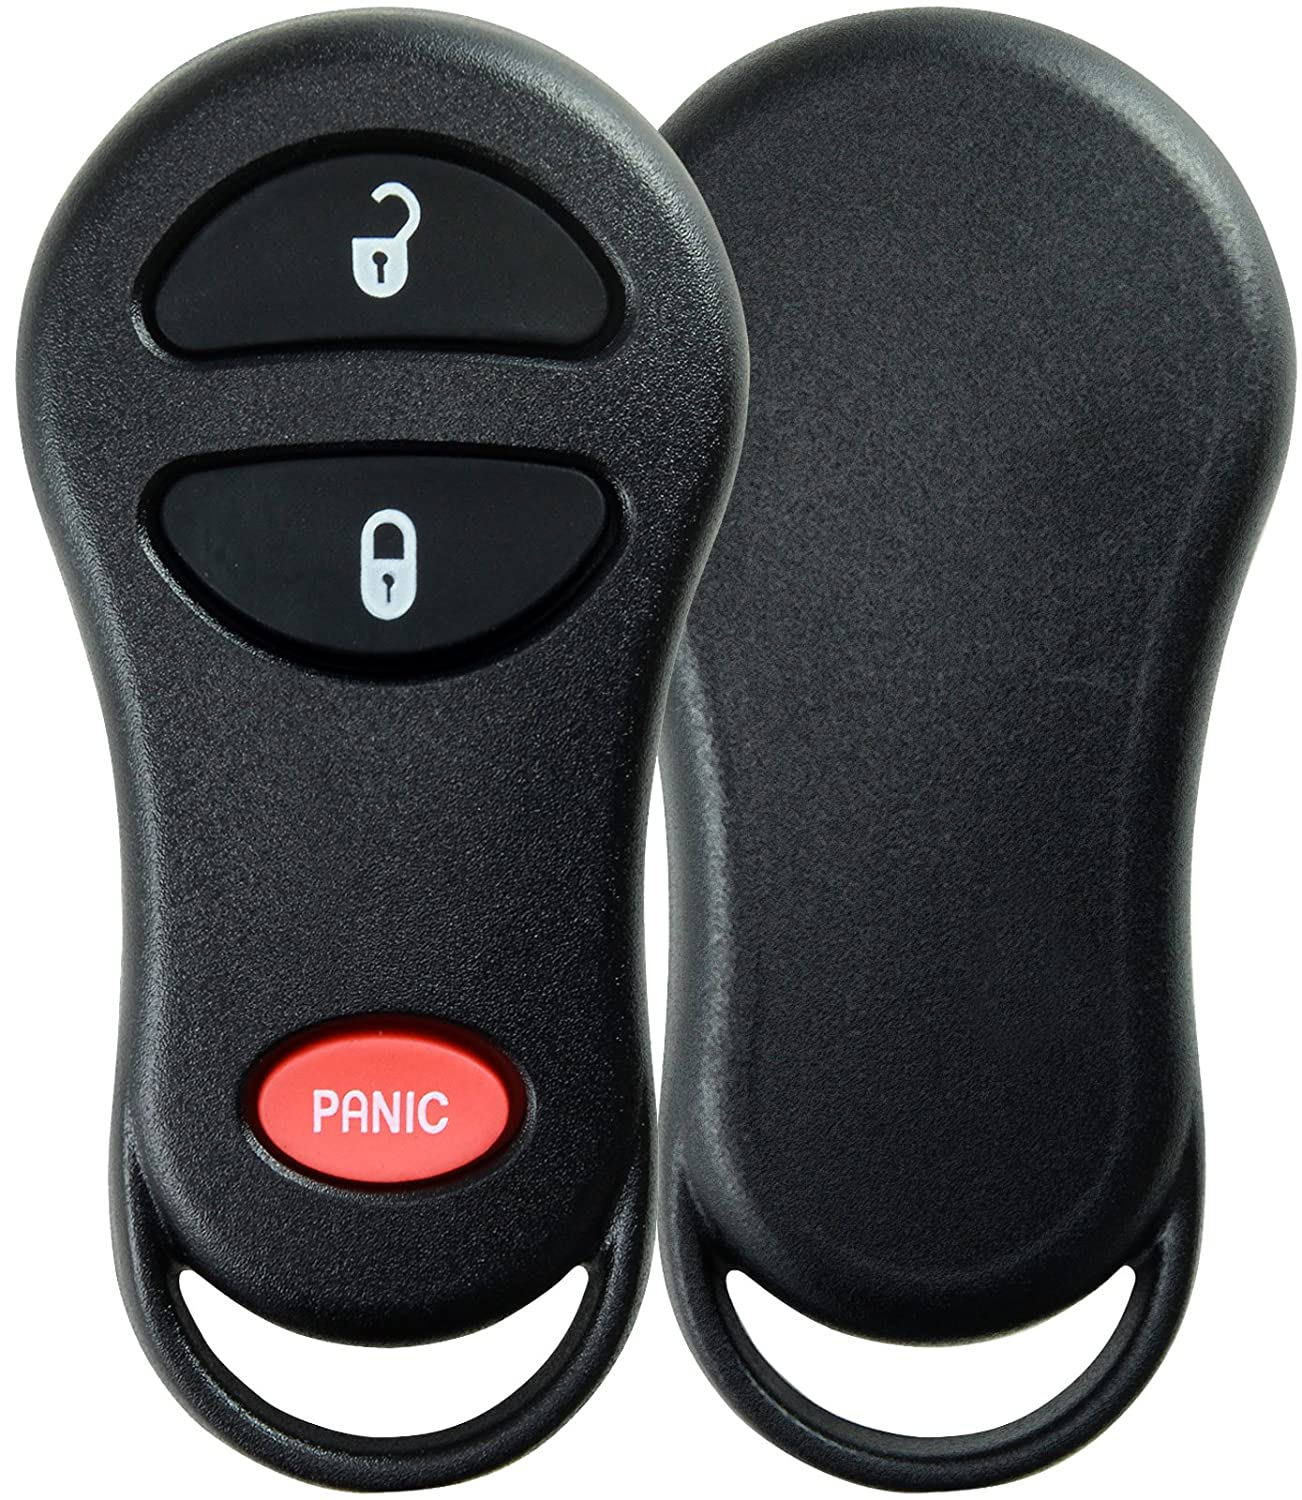 KeylessOption Just the Case Keyless Entry Remote Control Car Key Fob Shell Replacement for GQ43VT13T GQ43VT17T GQ43VT9T KPT1034